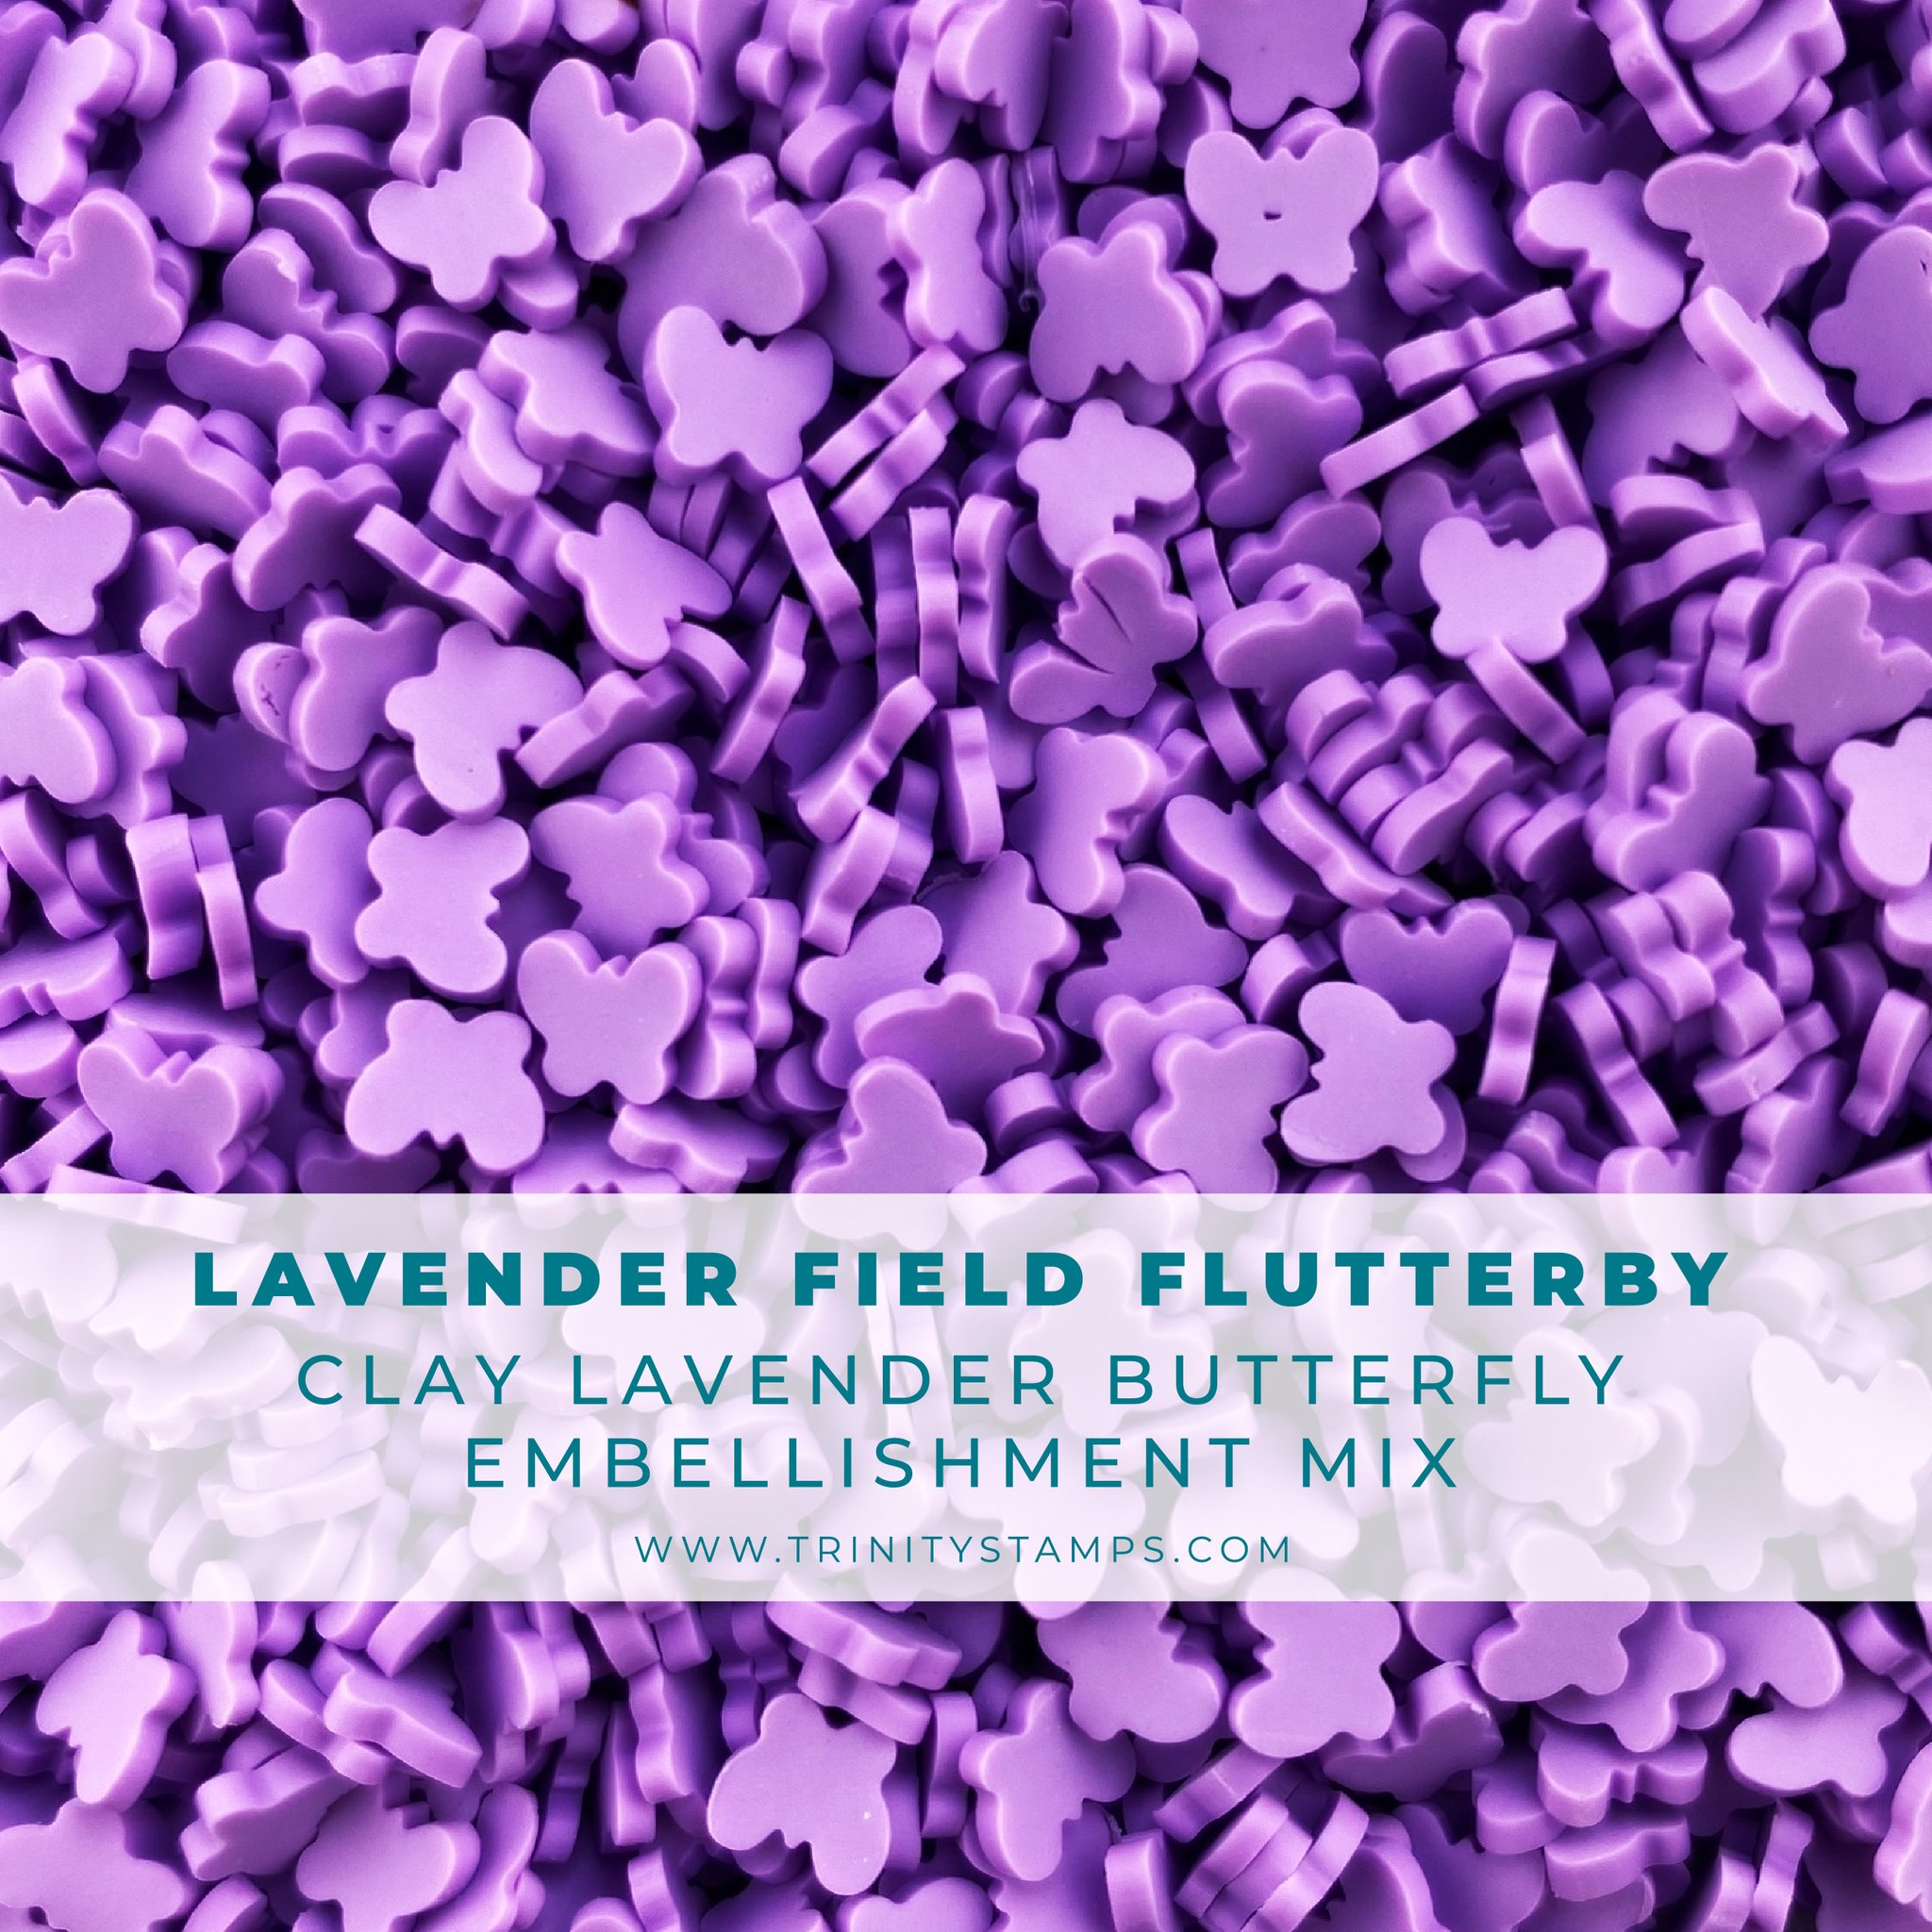 *NEW* - Trinity Stamps - Lavender Field Flutterby Clay Embellishment Mix